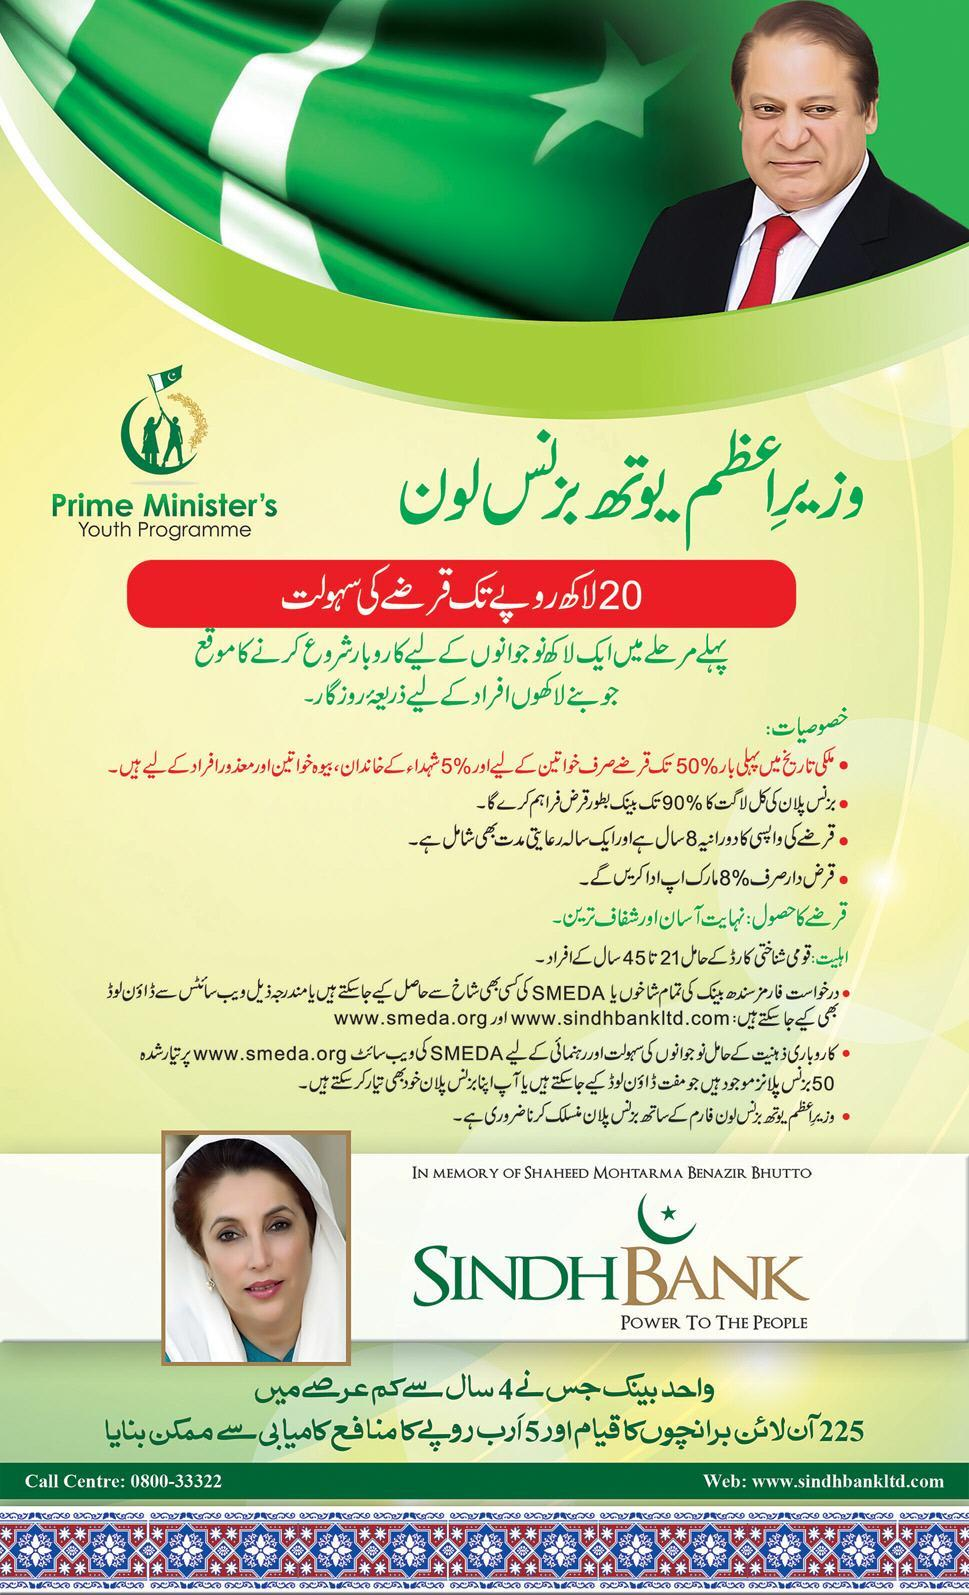 Sindh Bank Prime Minister Youth Business Loan Scheme 2015 Eligibility